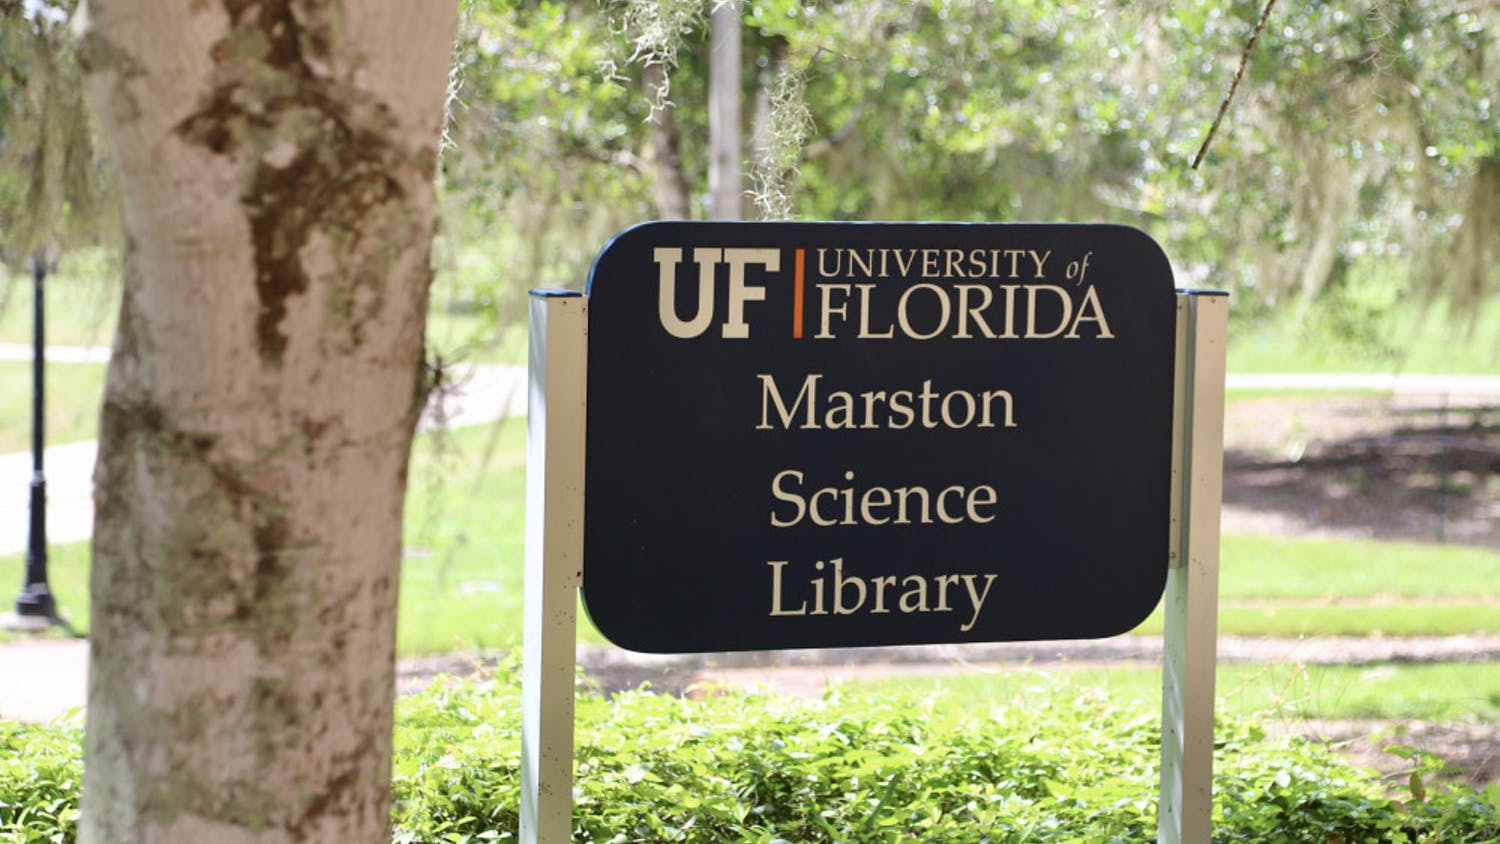 To combat the spread of COVID-19 in public spaces, the UF Smathers libraries have reduced computers, tables, hours and capacities.